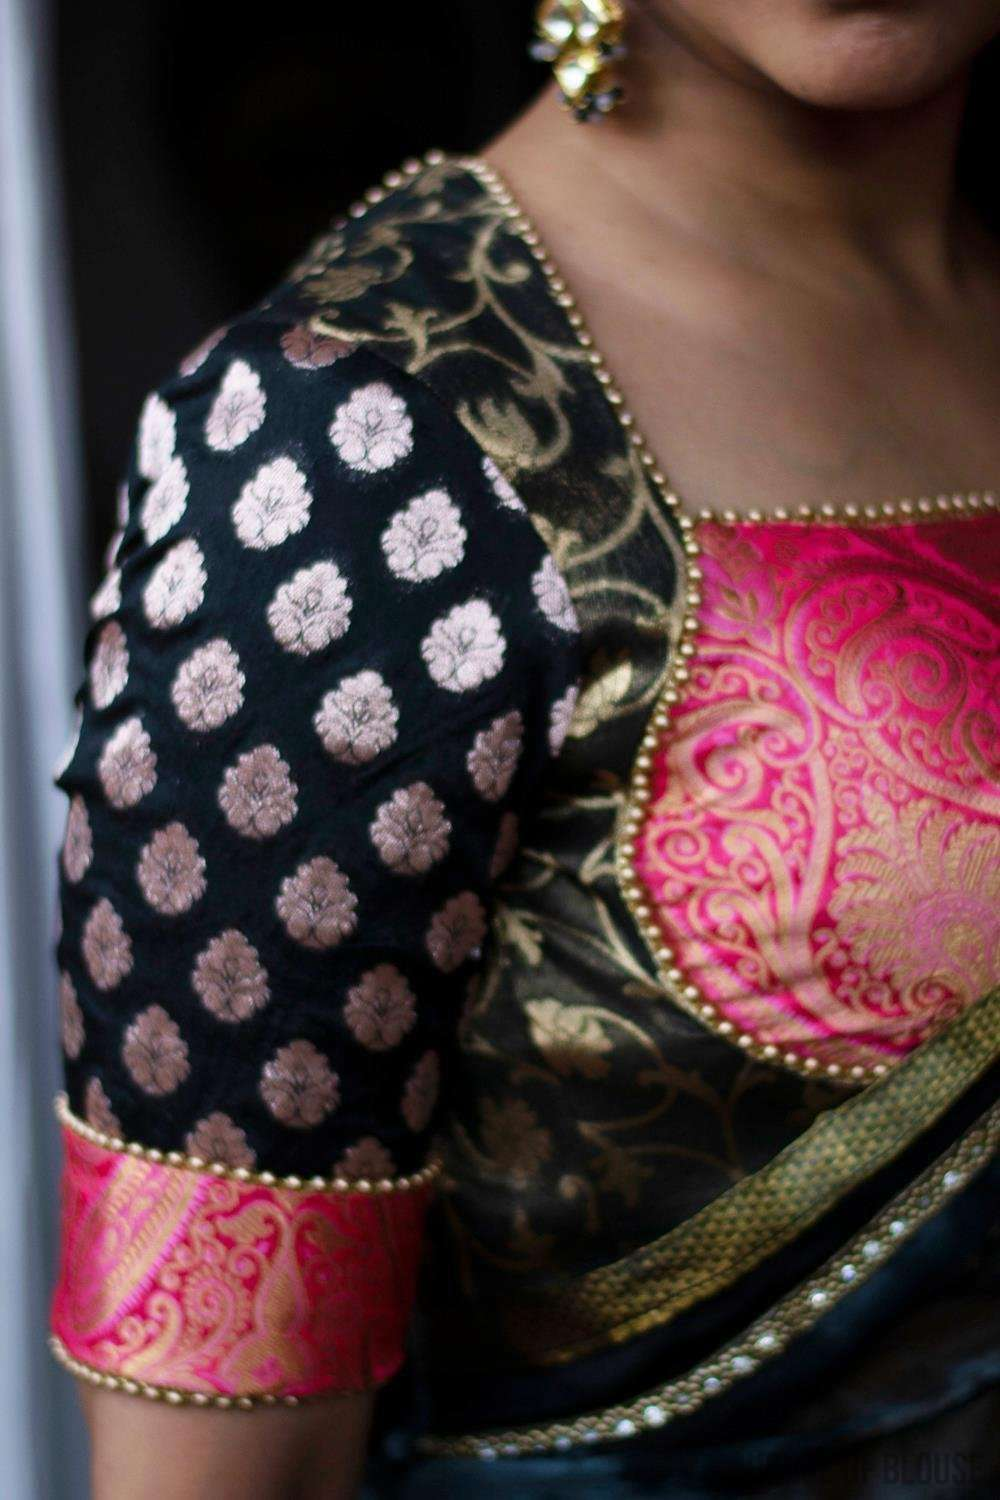 Patchwork blouse made in black and pink brocade with gold bead edging. - House of Blouse